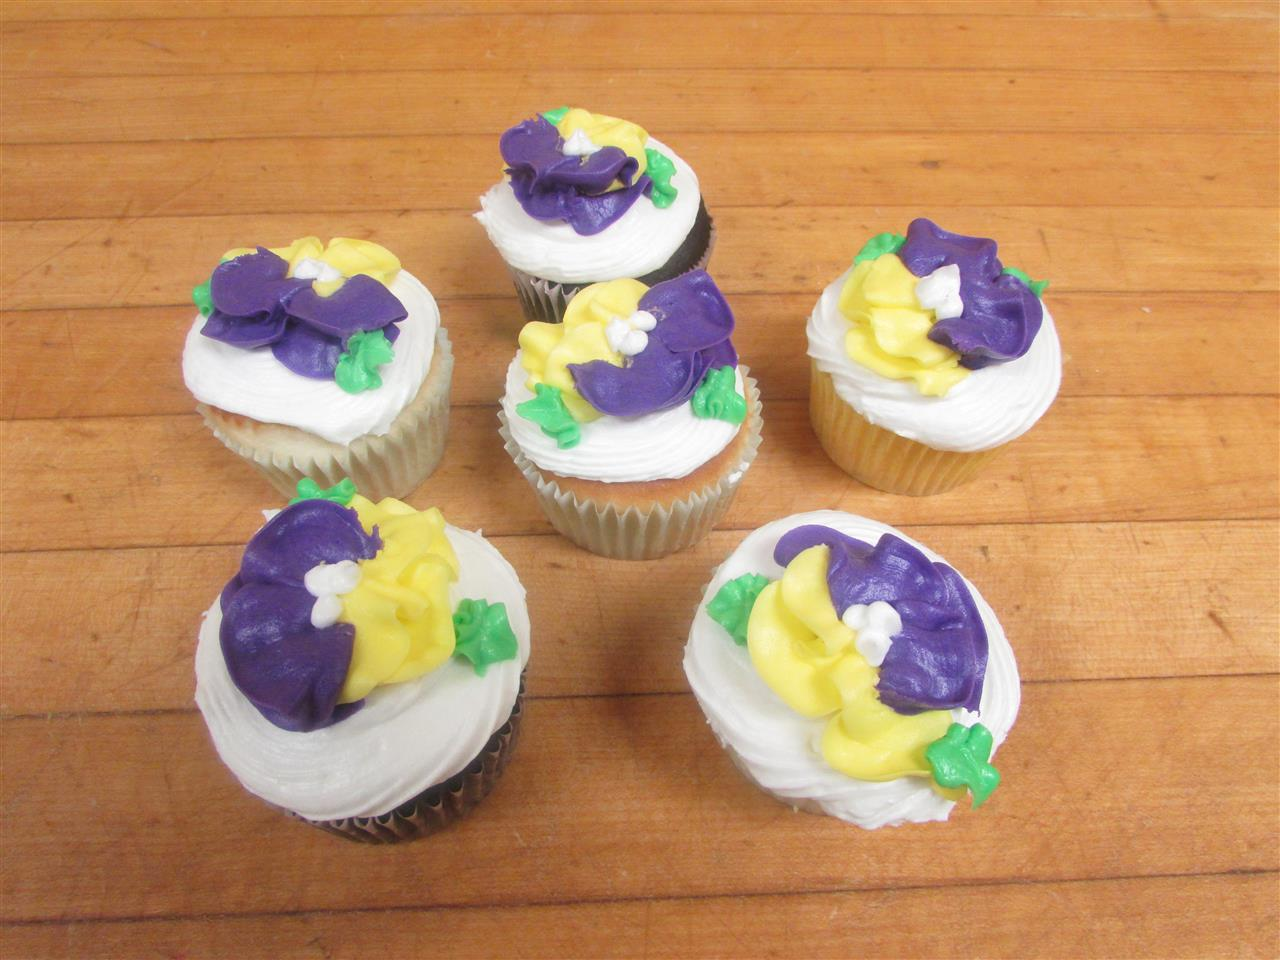 Six frosted cupcaked decorated with yellow and purple flowers made of frosting